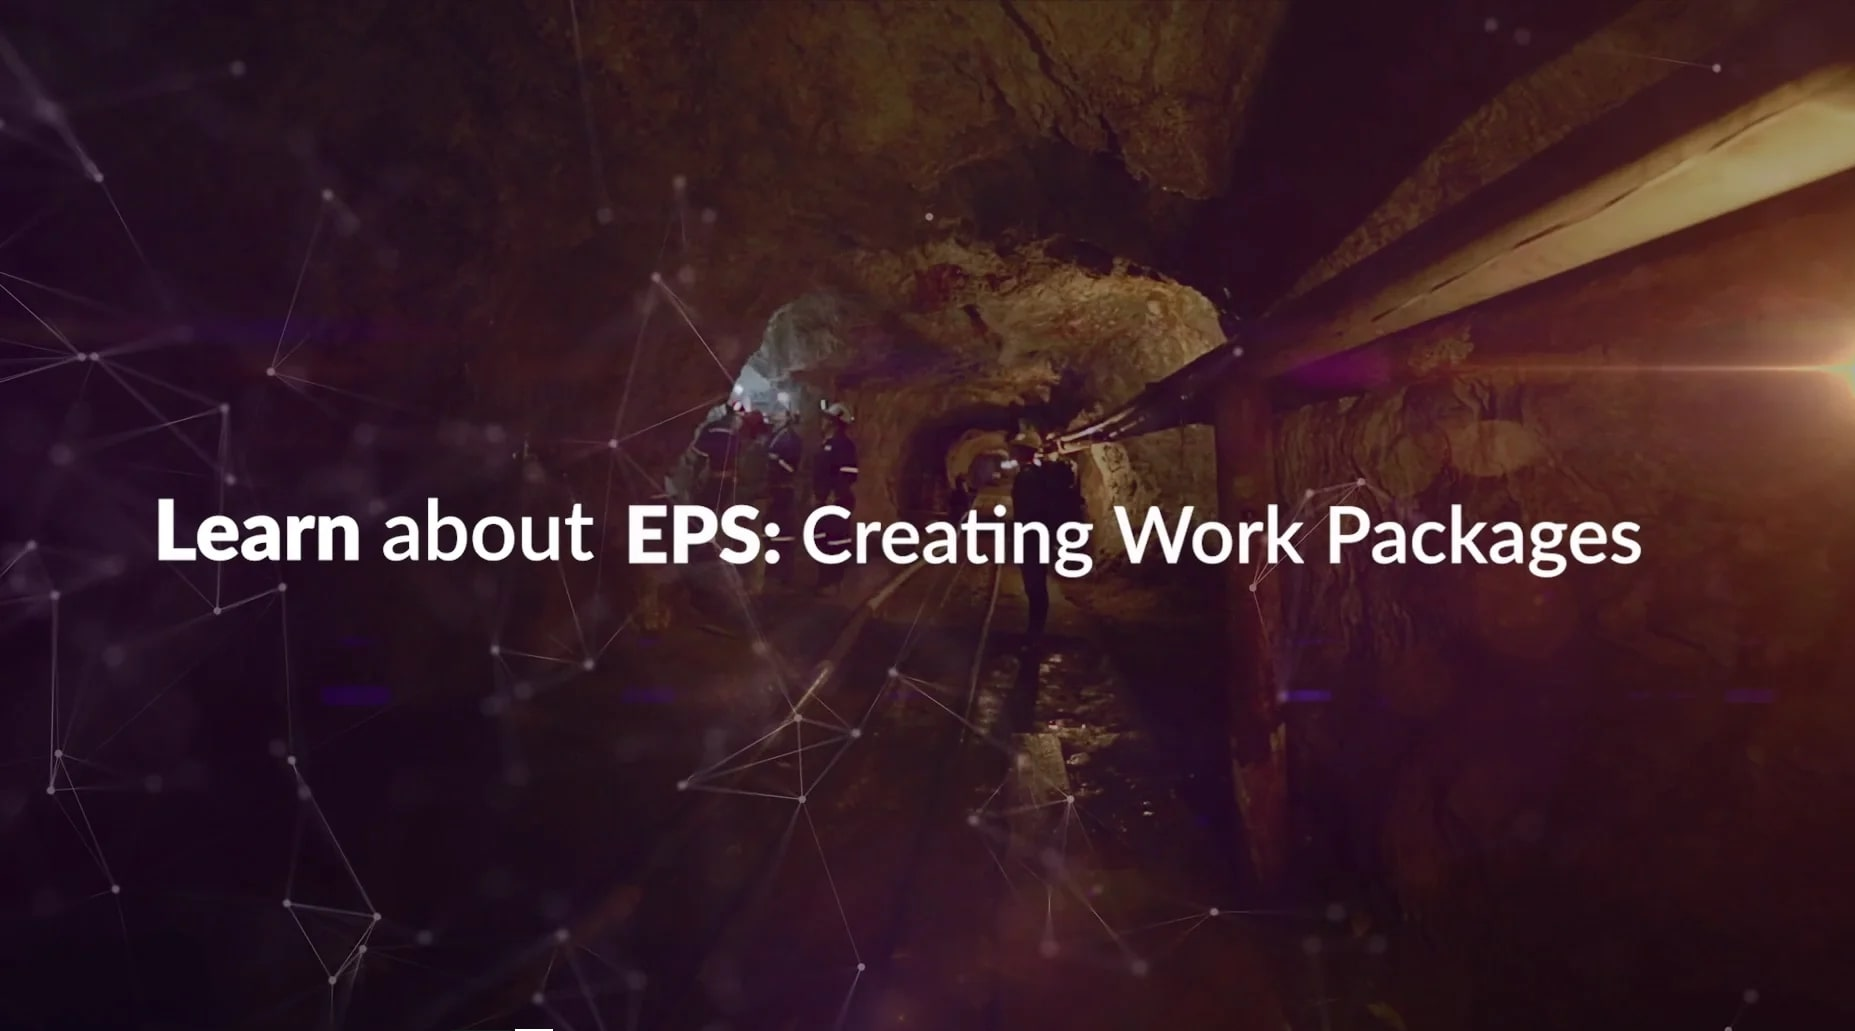 Title screenshot of EPS Video - Creating Work Packages - with the text 'learn about EPS: Creating Work Packages